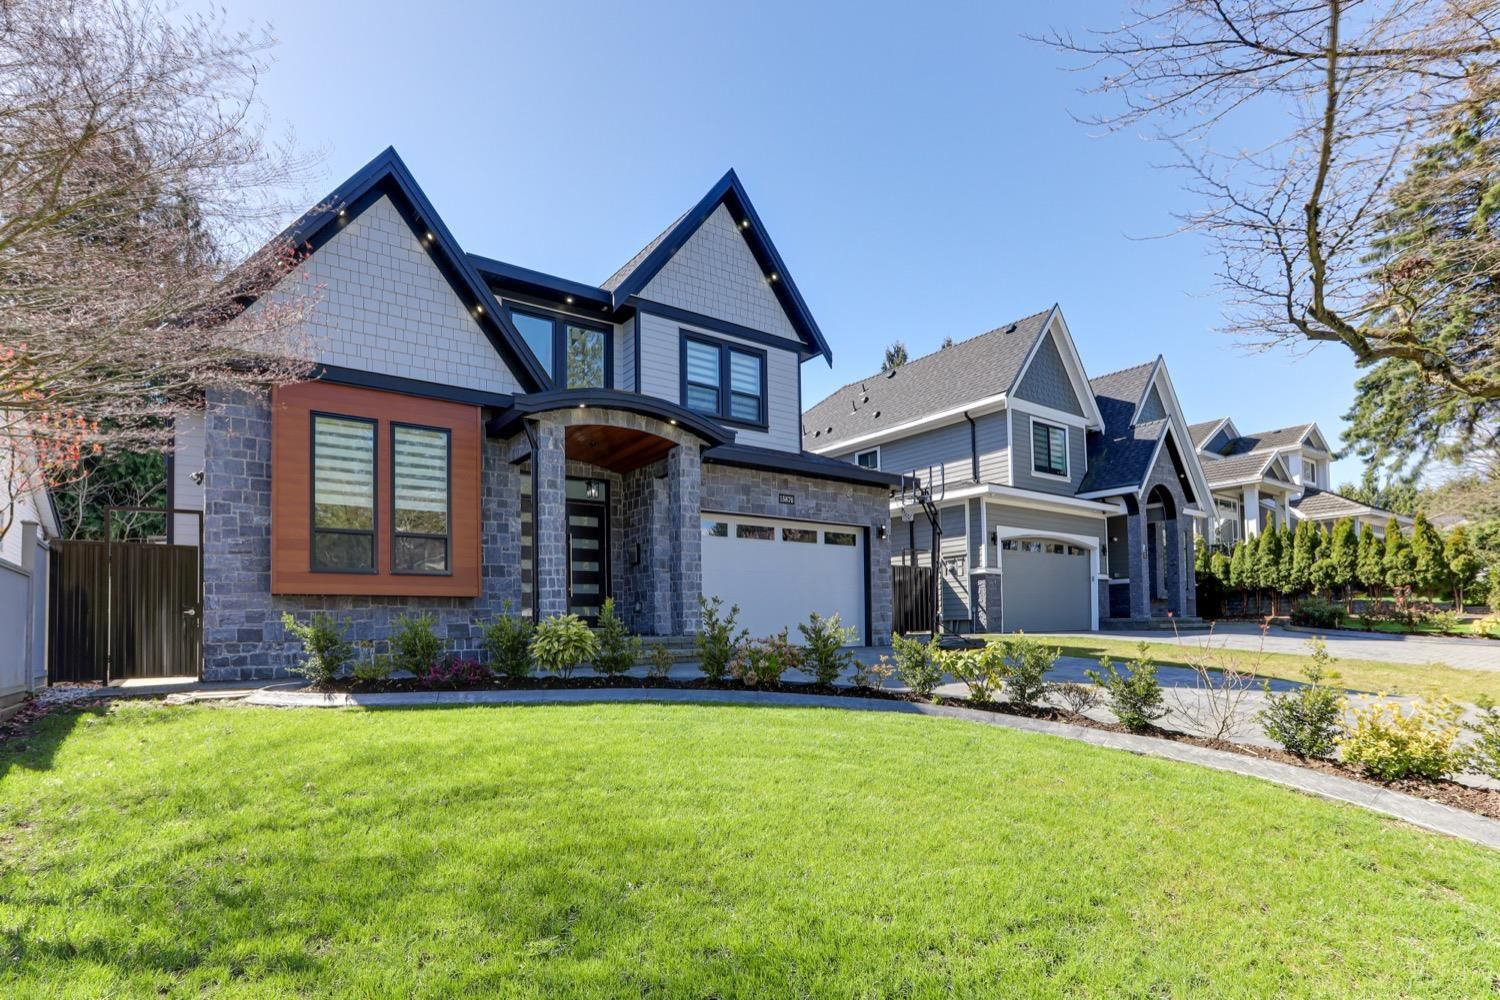 Main Photo: 15876 101A Avenue in Surrey: Guildford House for sale (North Surrey)  : MLS®# R2594328